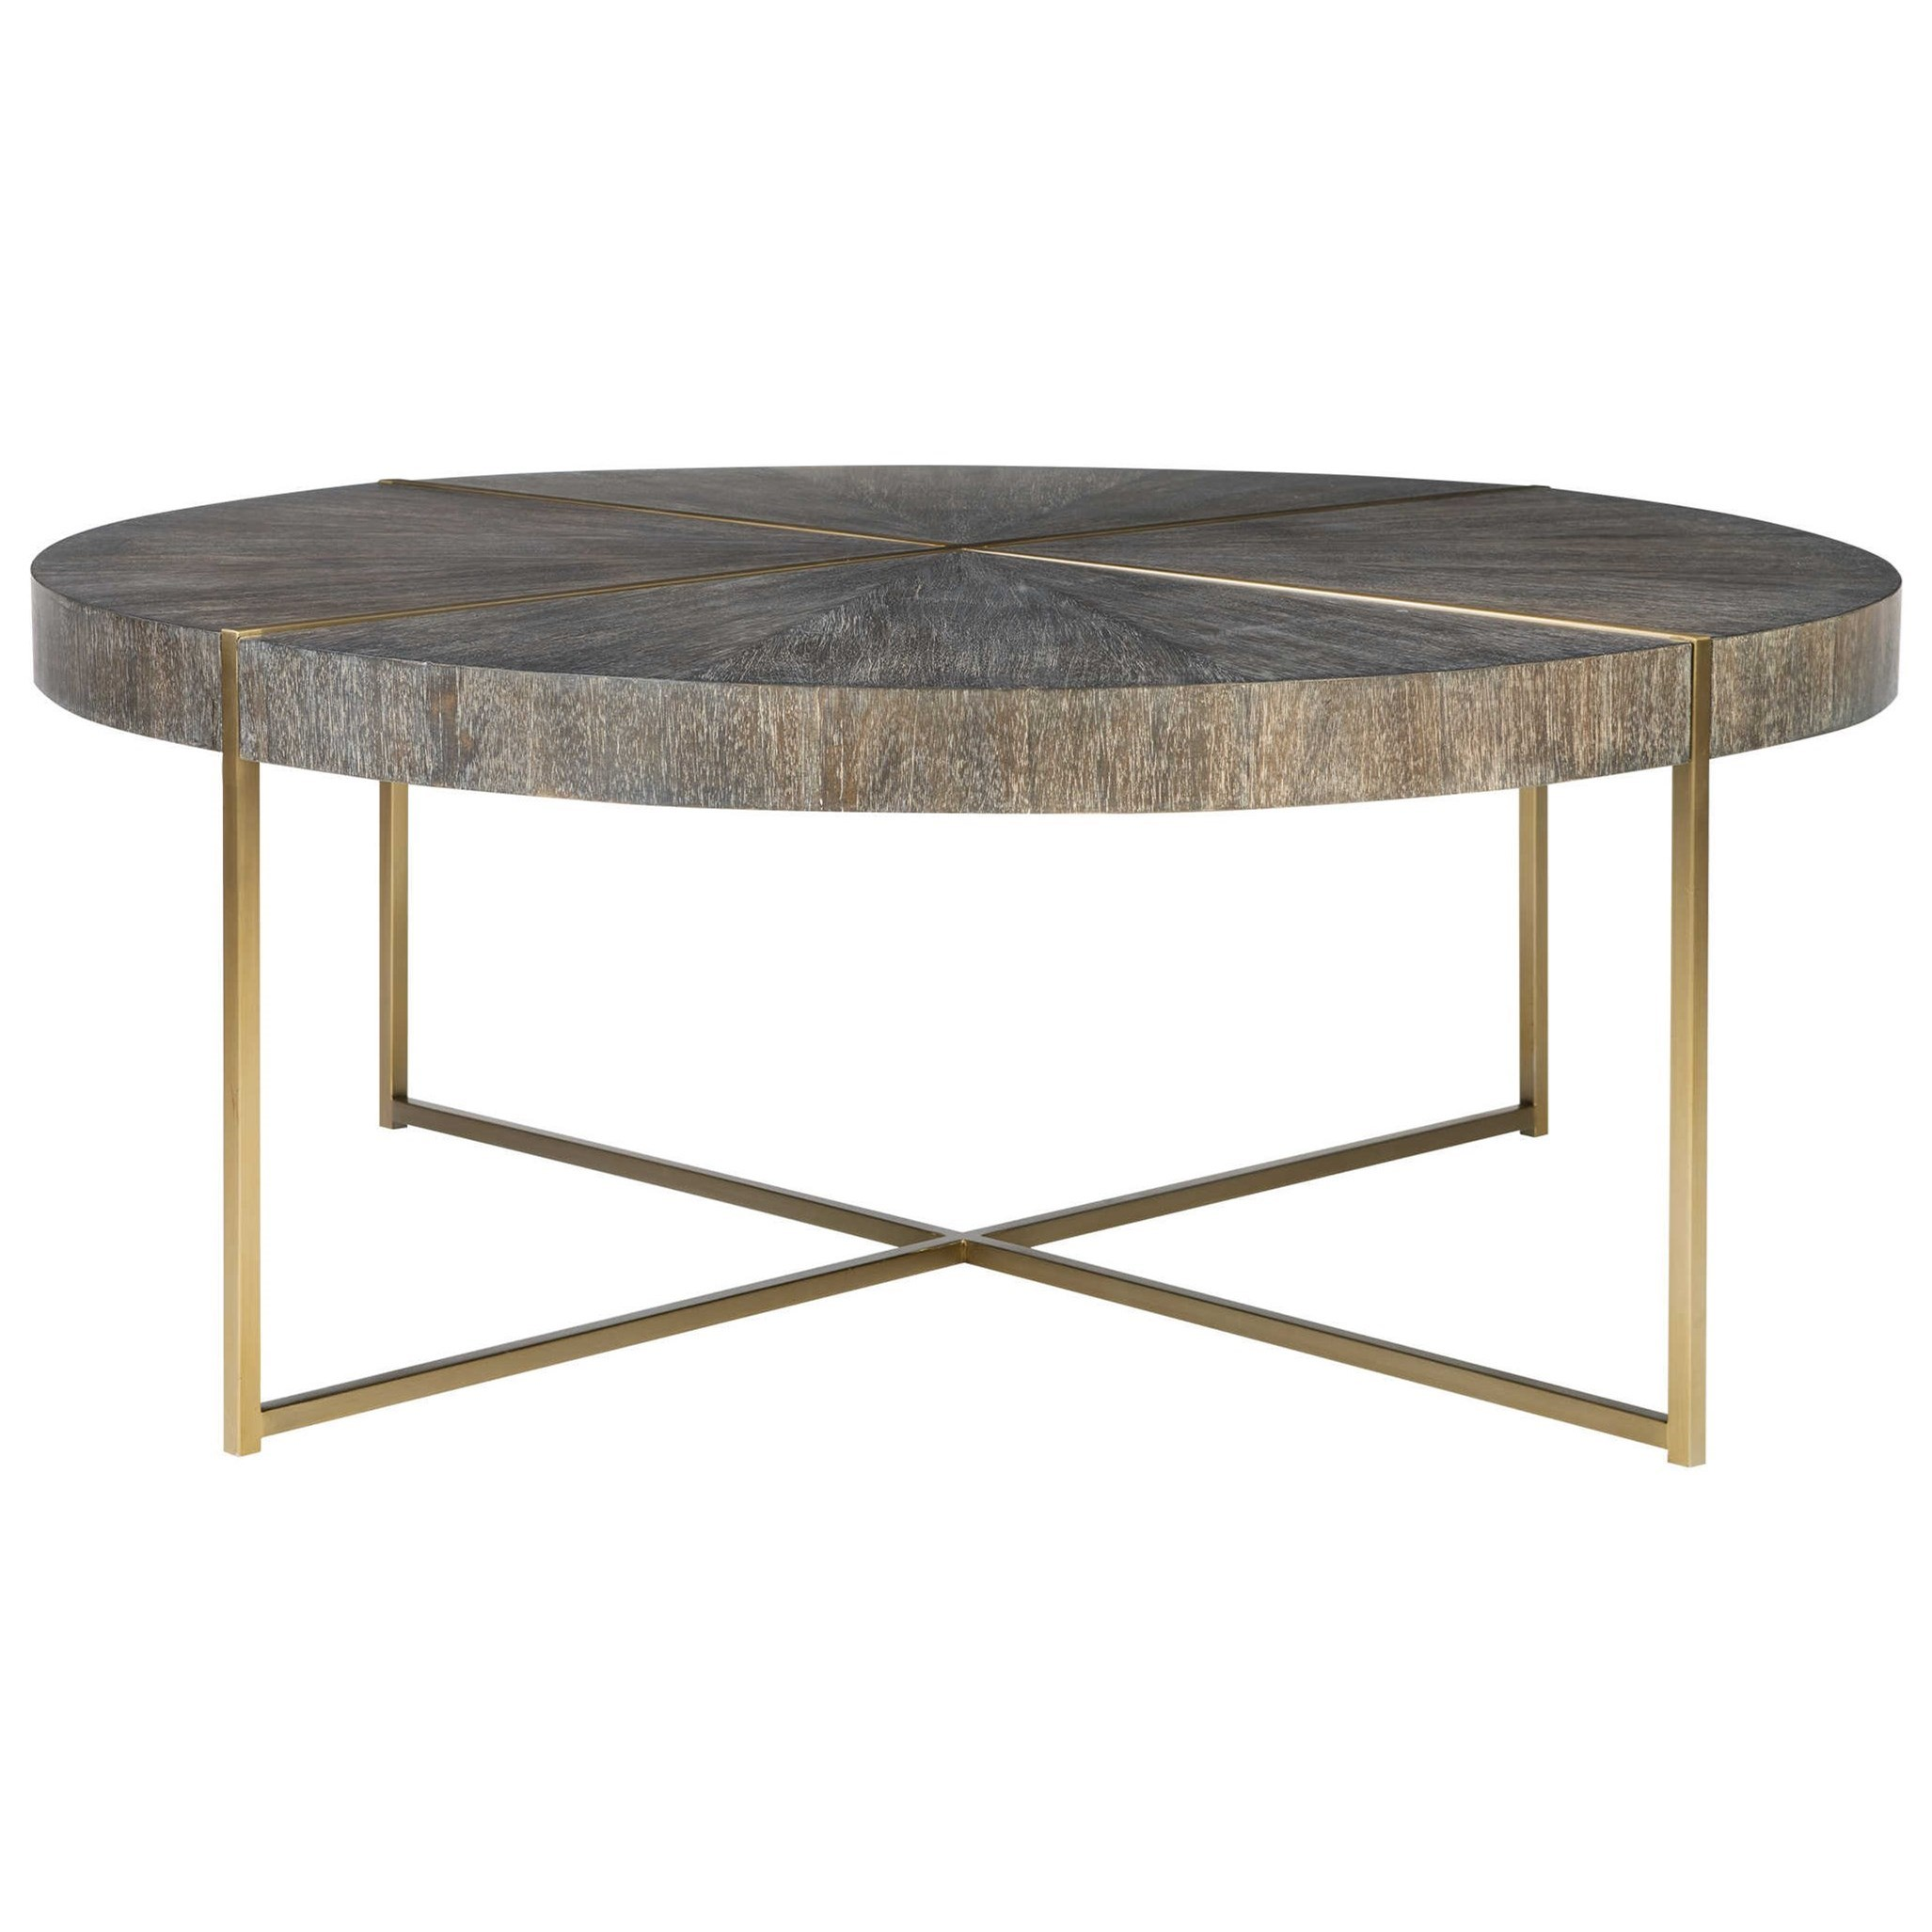 Accent Furniture - Occasional Tables Taja Round Coffee Table by Uttermost at Factory Direct Furniture